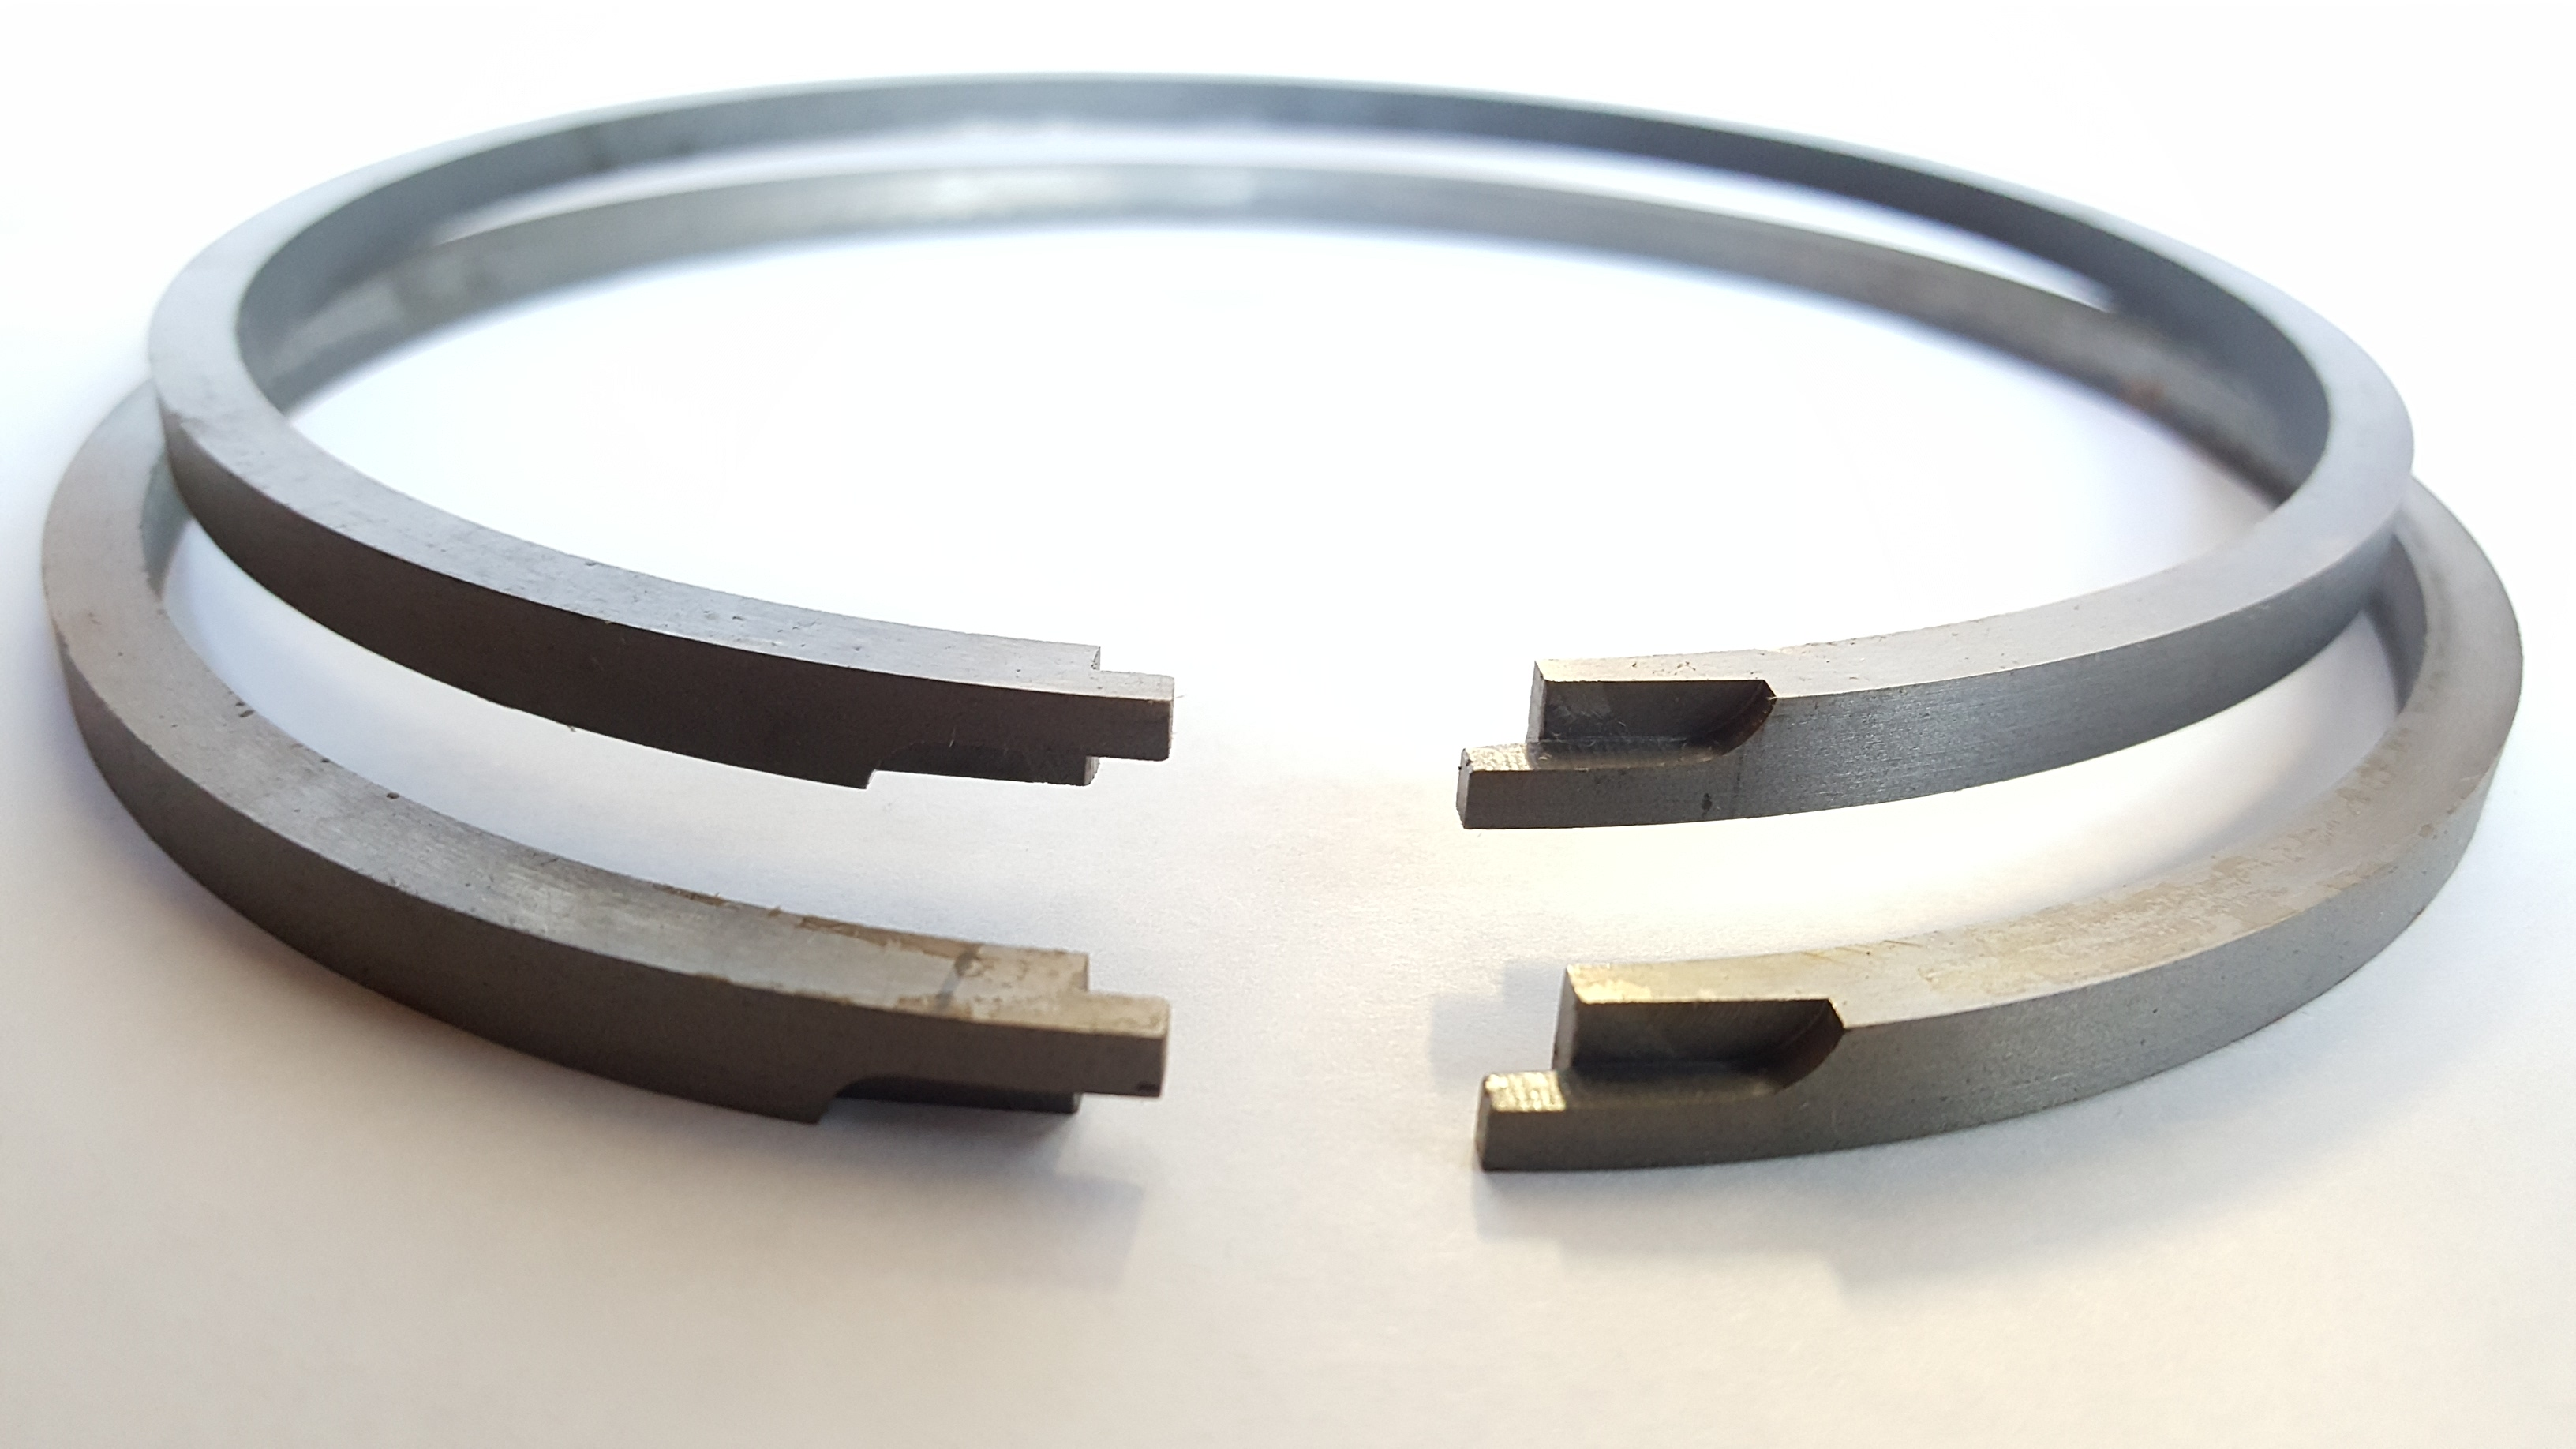 Shurseal piston ring joint configuration